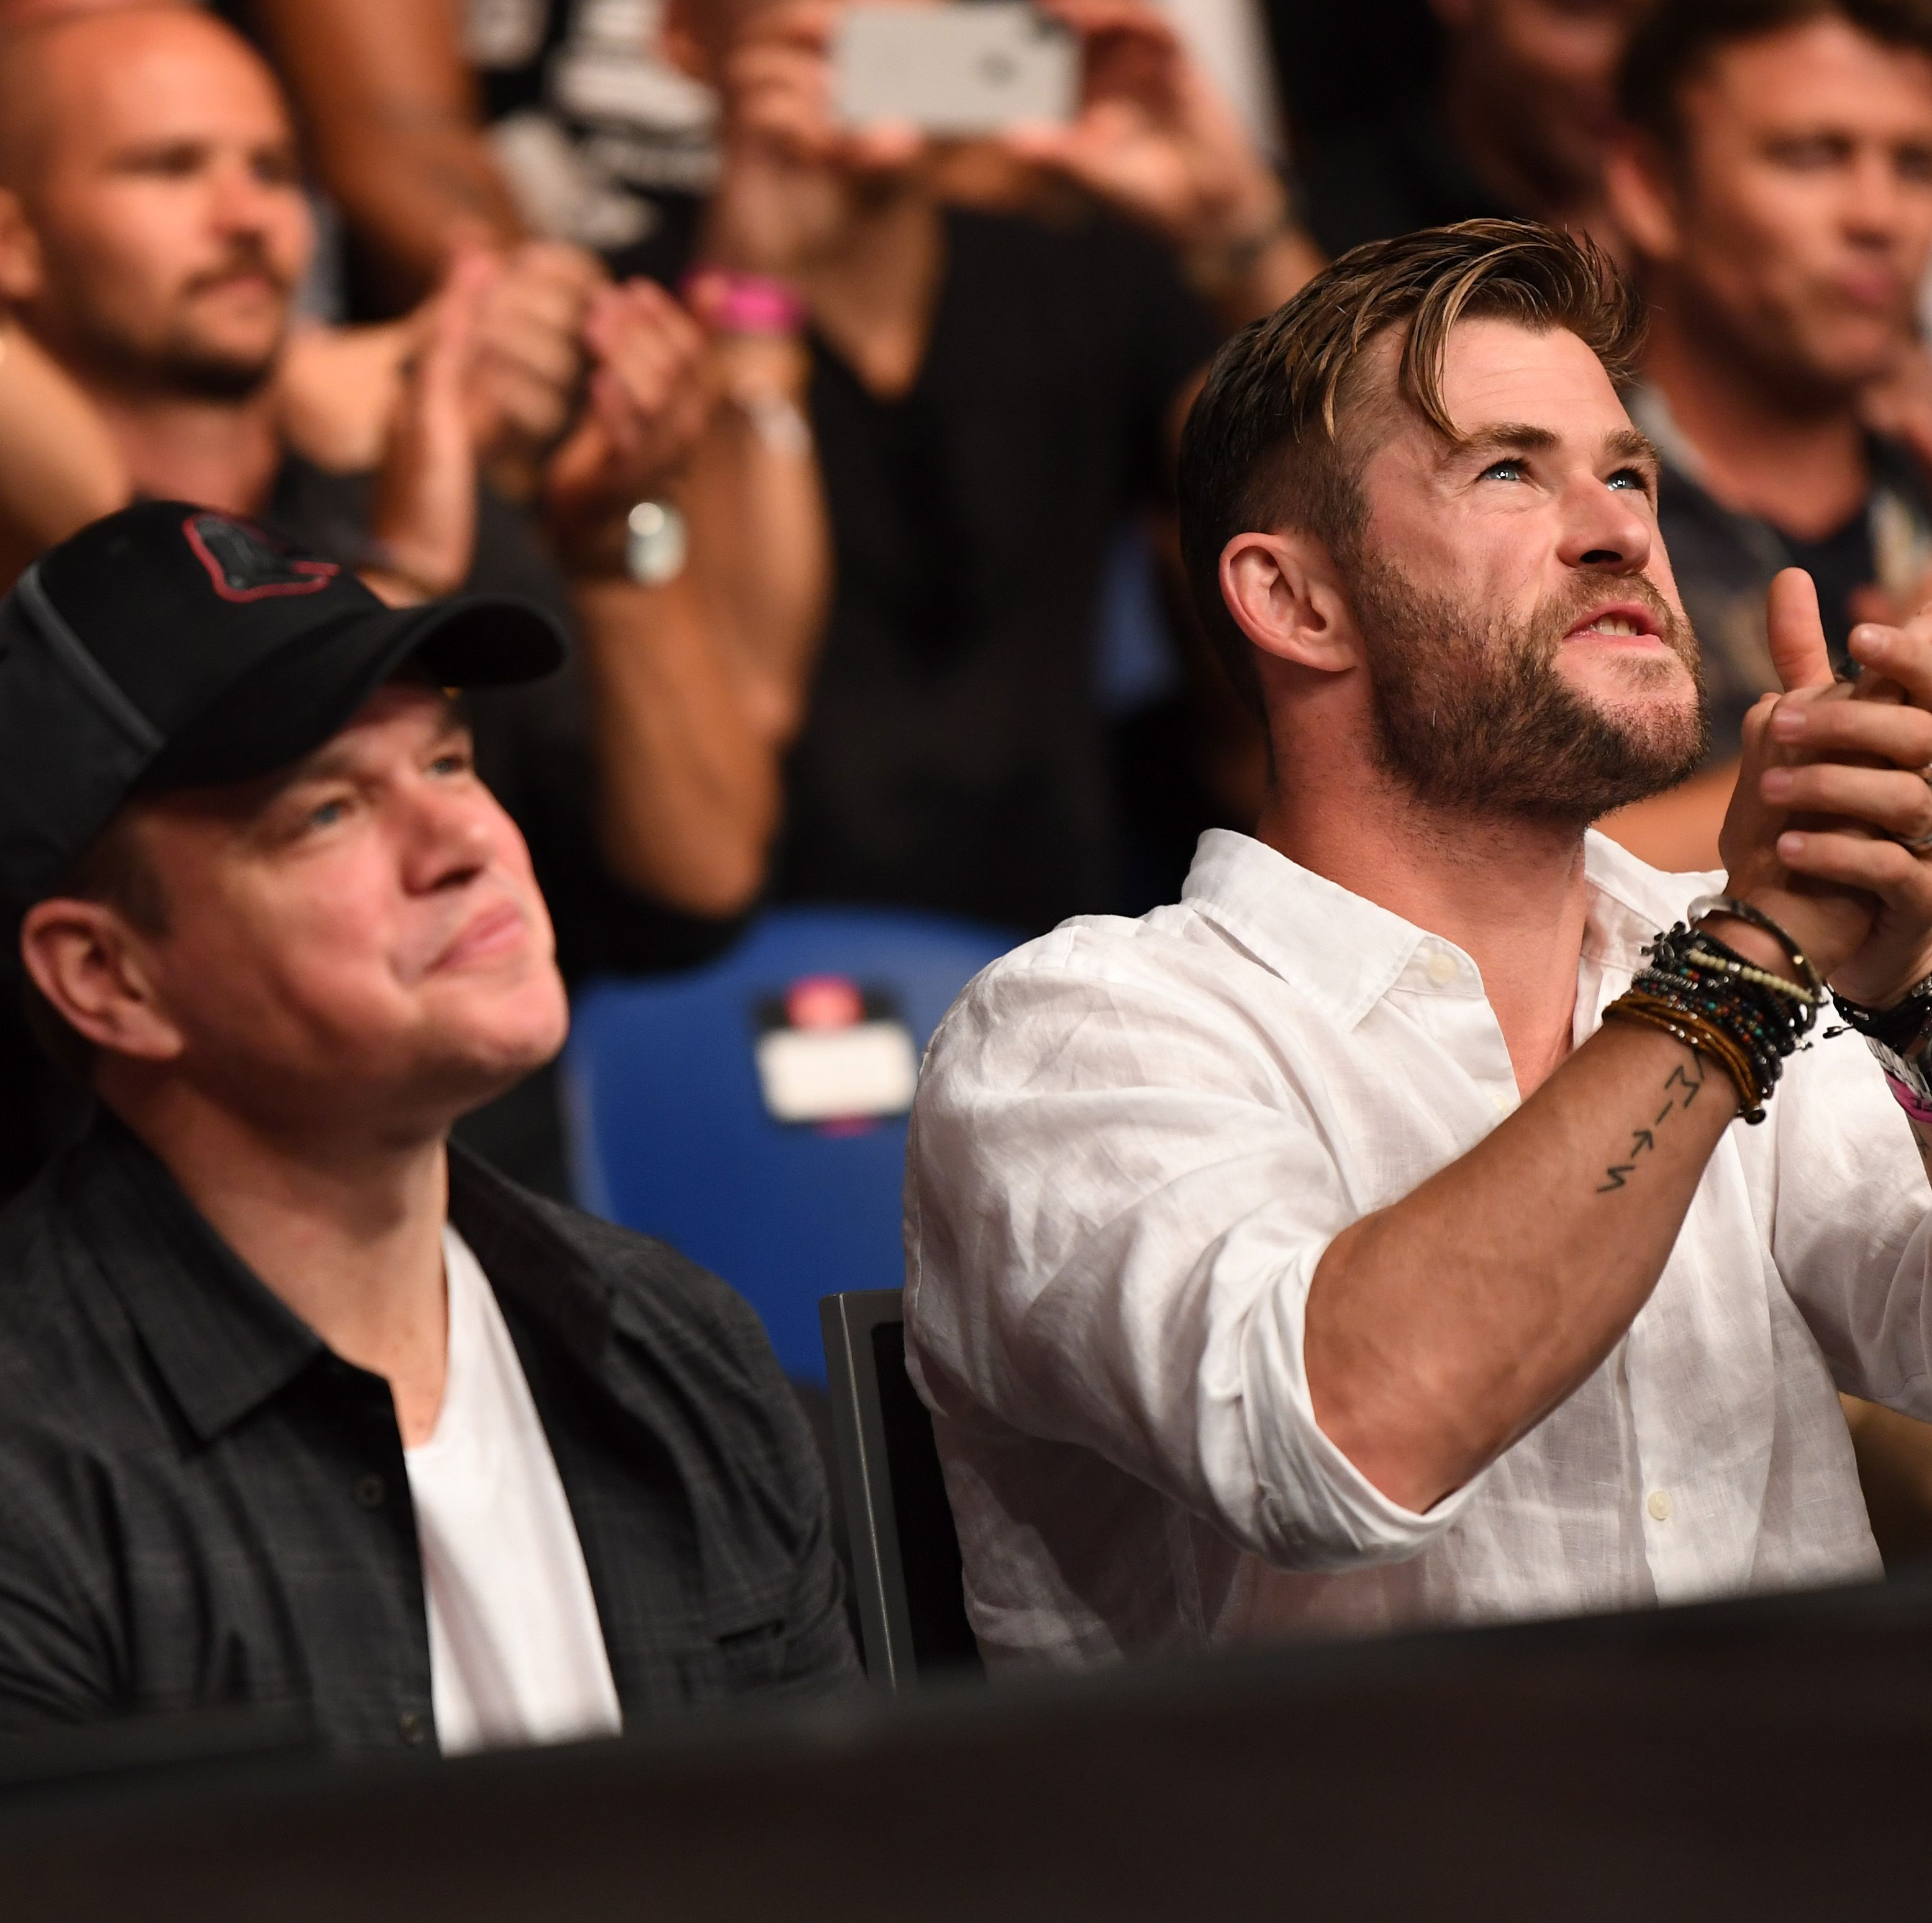 Chris Hemsworth and Matt Damon Watched an AFL Game and a UFC Fight in Australia